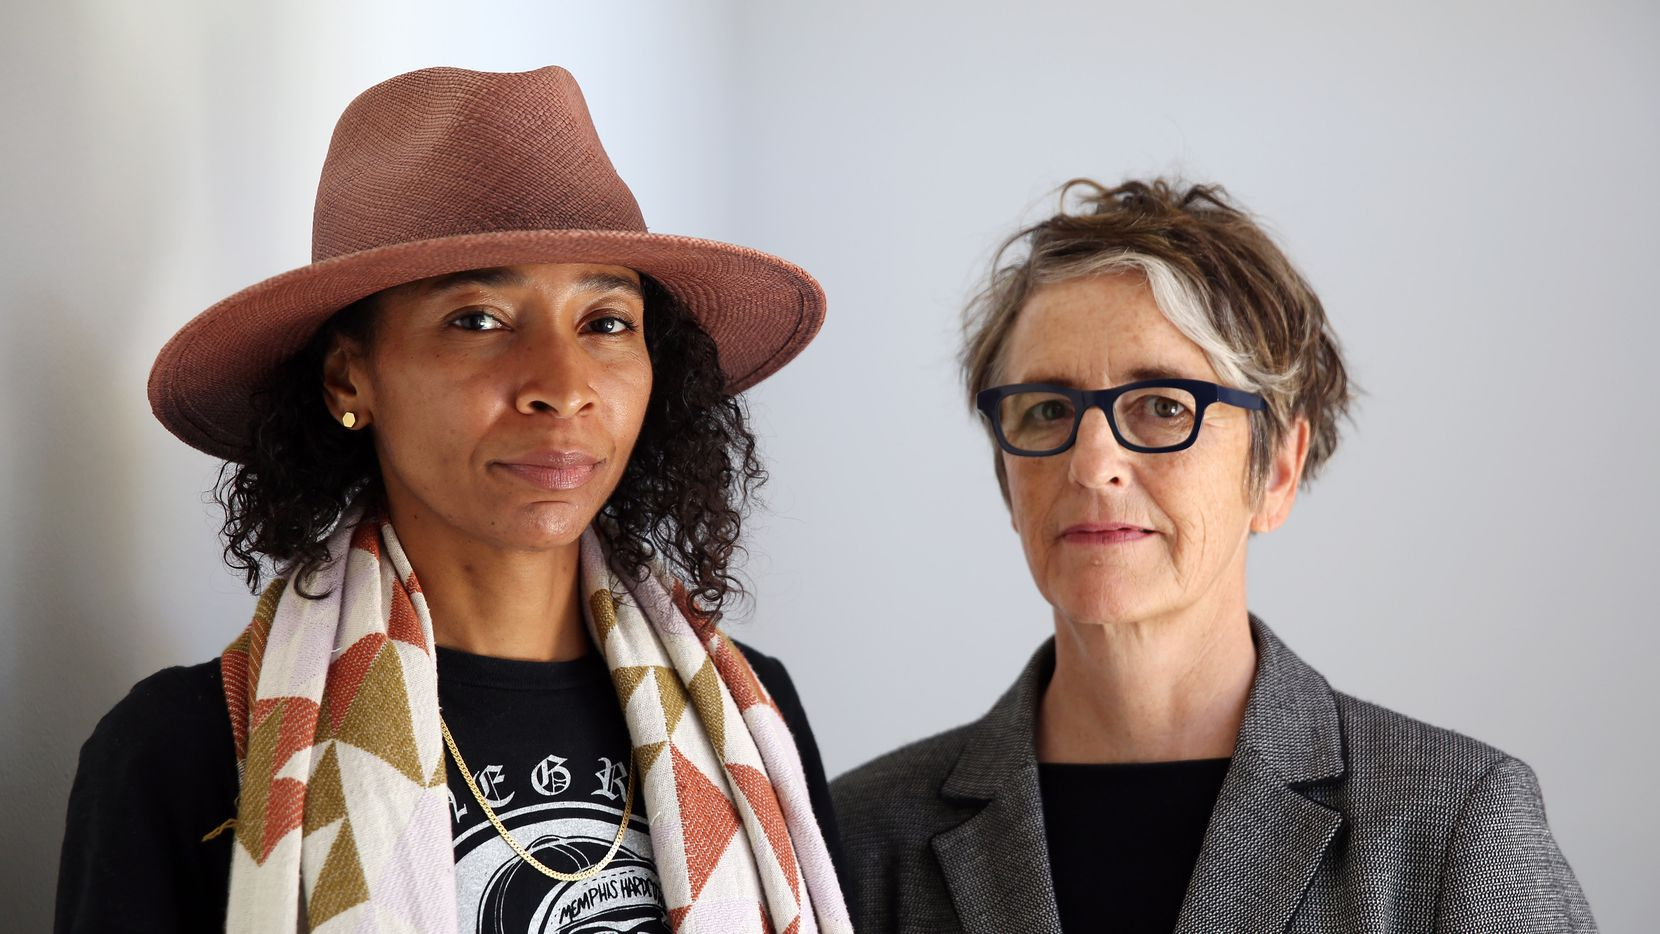 Artist Lauren Woods, left, and curator Kimberli Meyer, right, stand for a portrait at the Beall Center for Art + Technology at the University of California, Irvine on Oct. 1, where their work is on display.